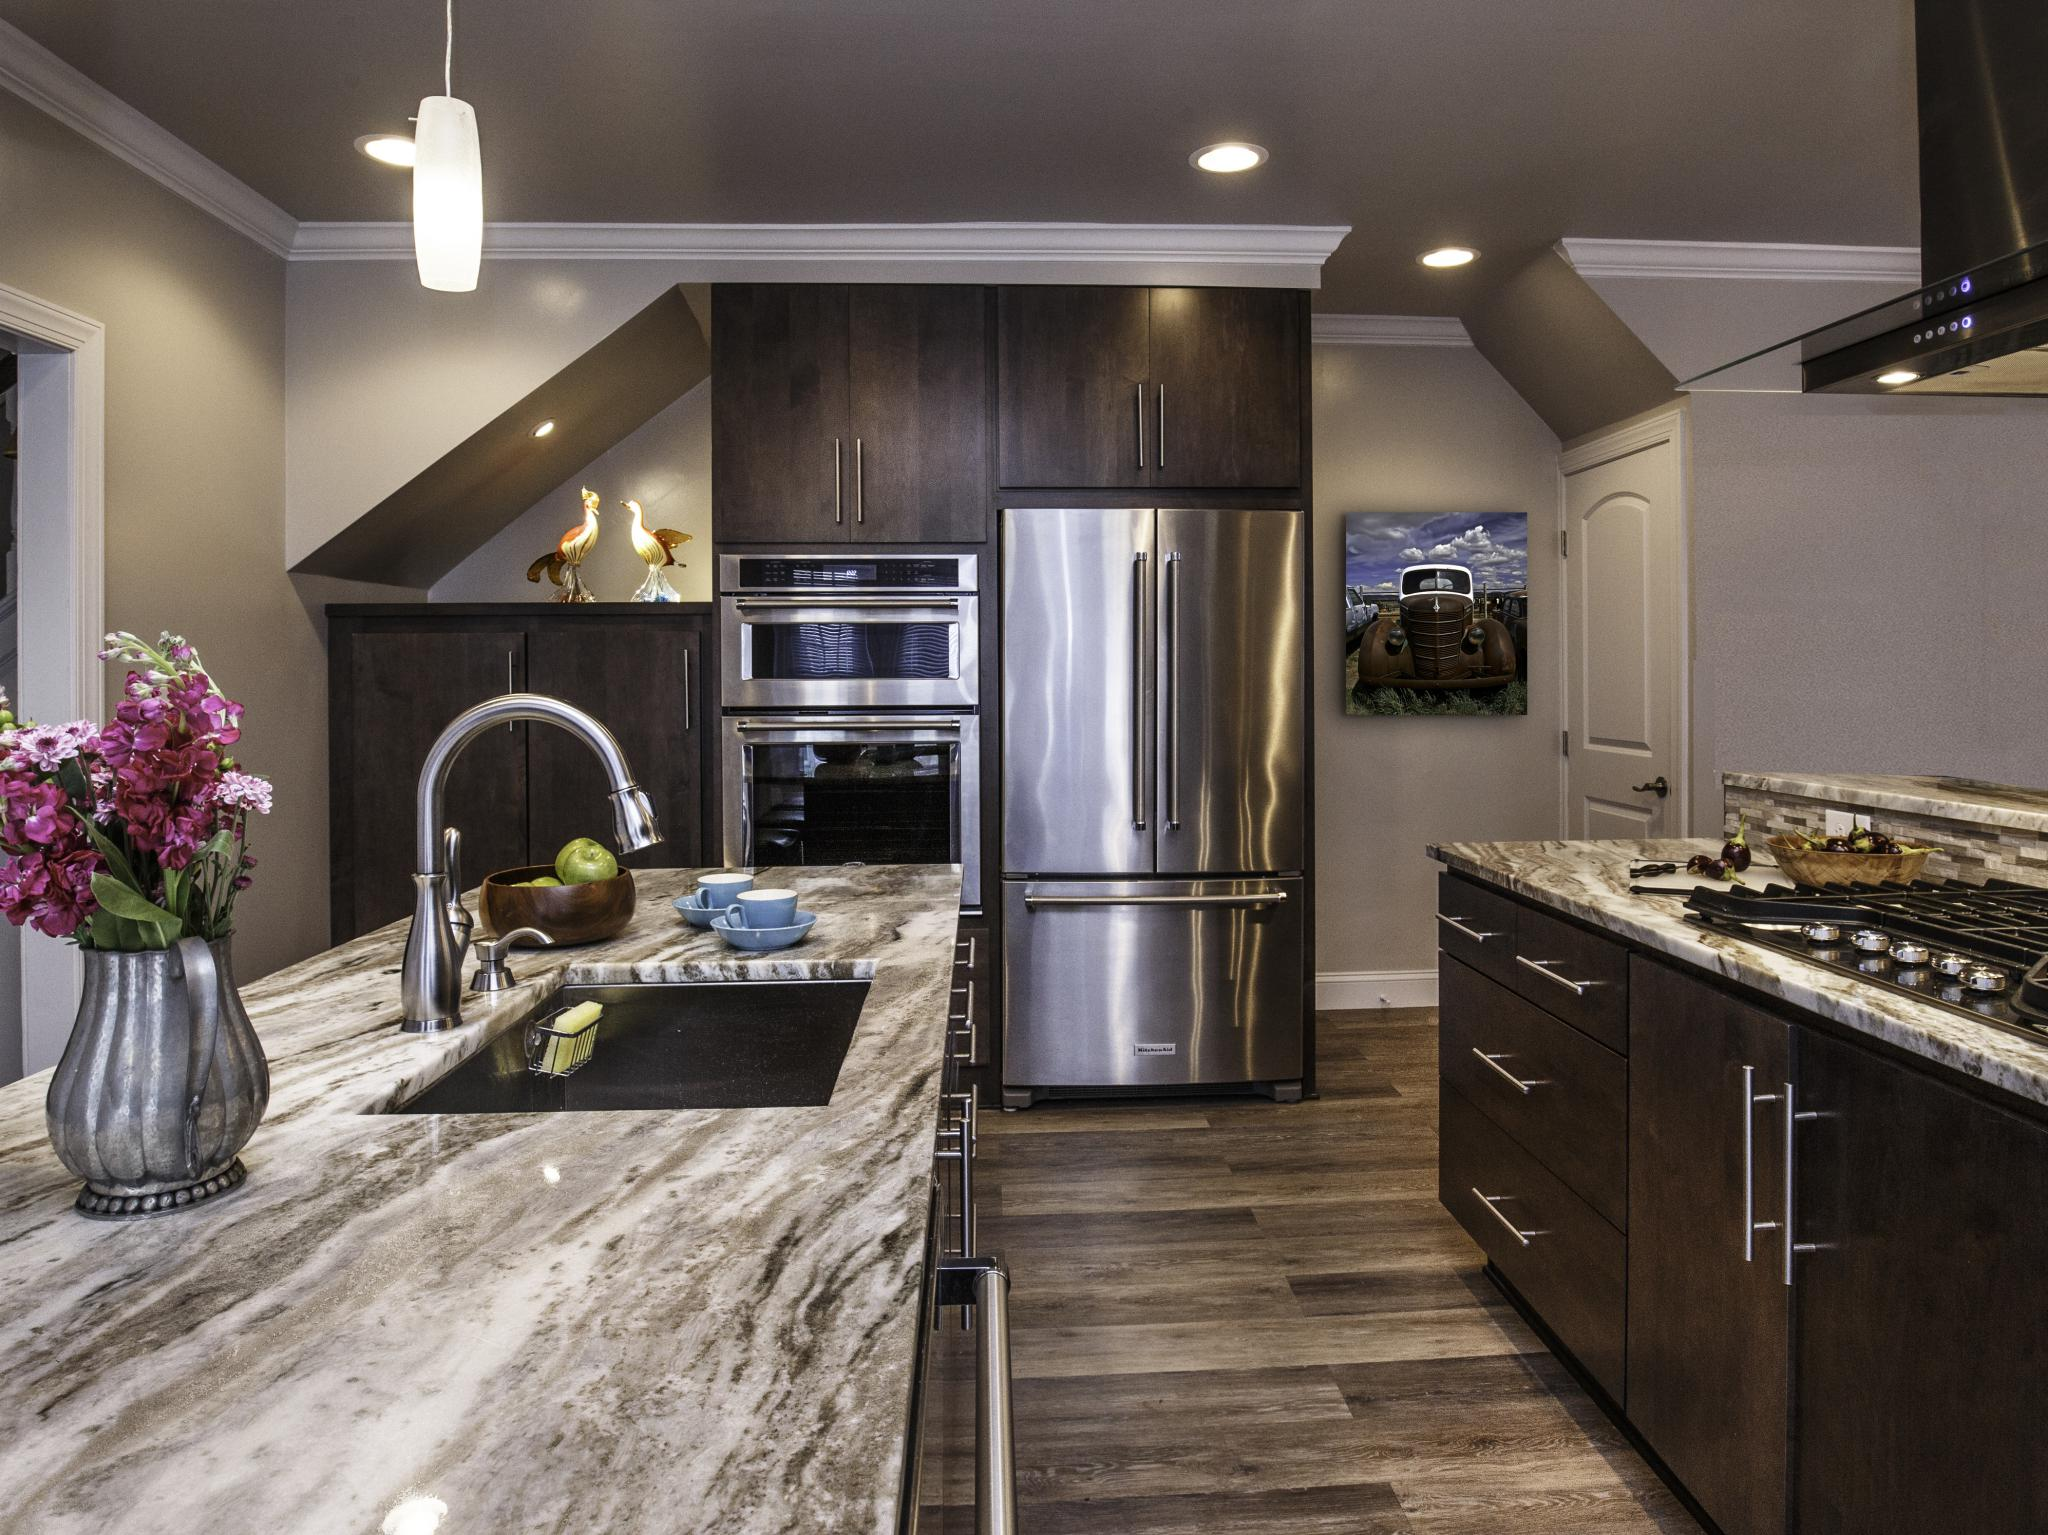 photos of kitchens rustic pendant lighting kitchen design gallery custom performance home before you visit us in person can see some the we have created for other great homes our area below